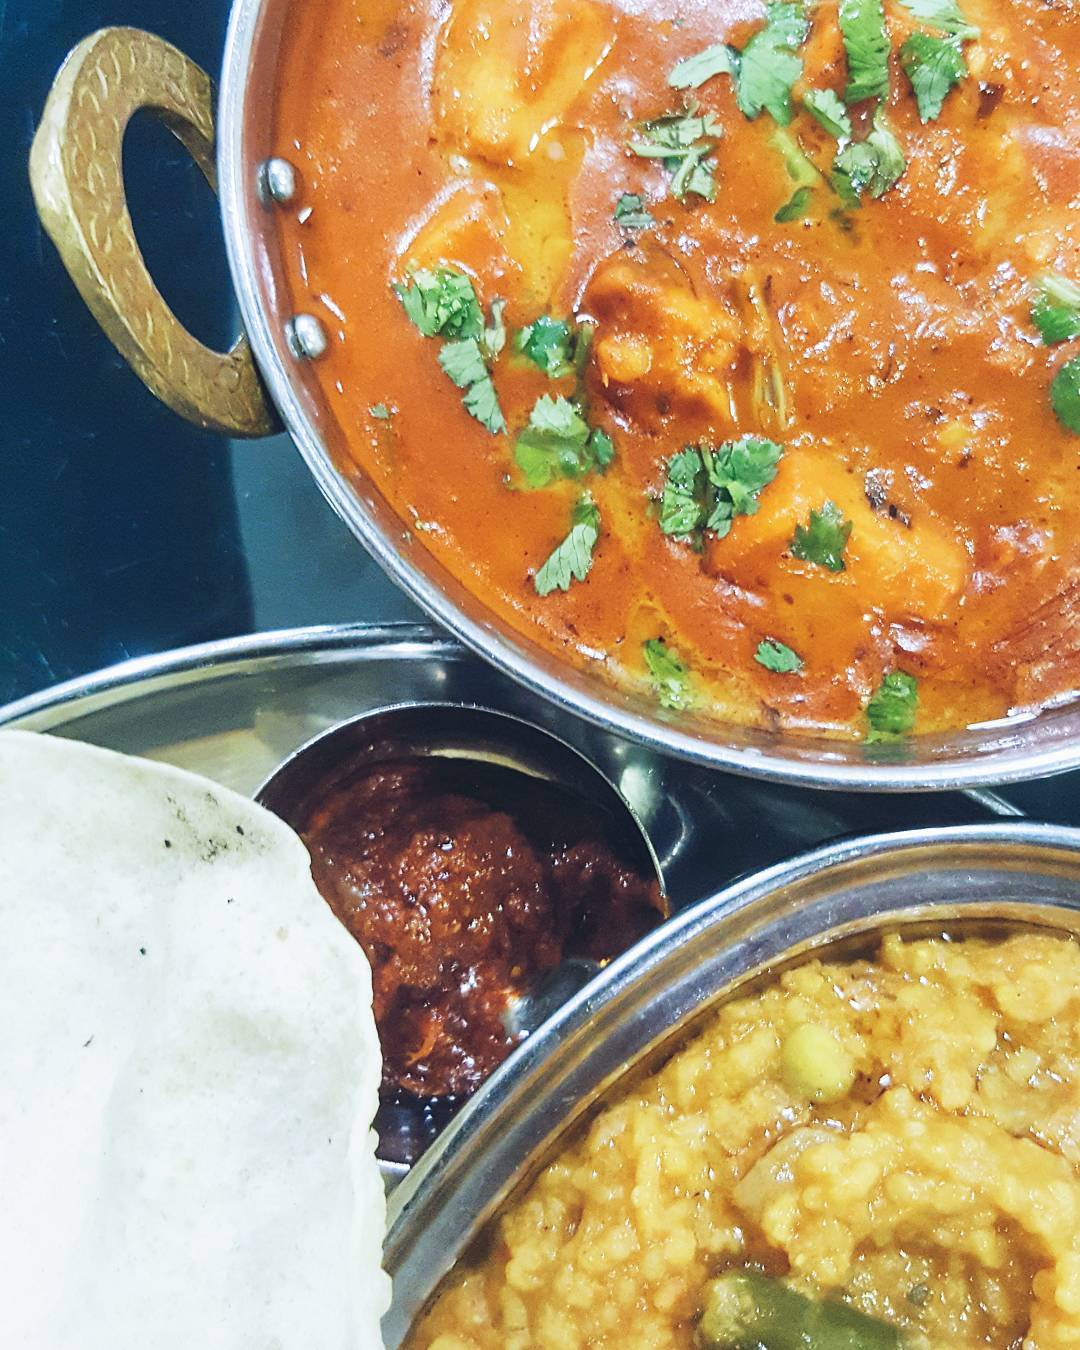 10 Vegetarian Food Delivery Options In Singapore For Meatless Meals Sent Straight To Your Door paneer butter masala